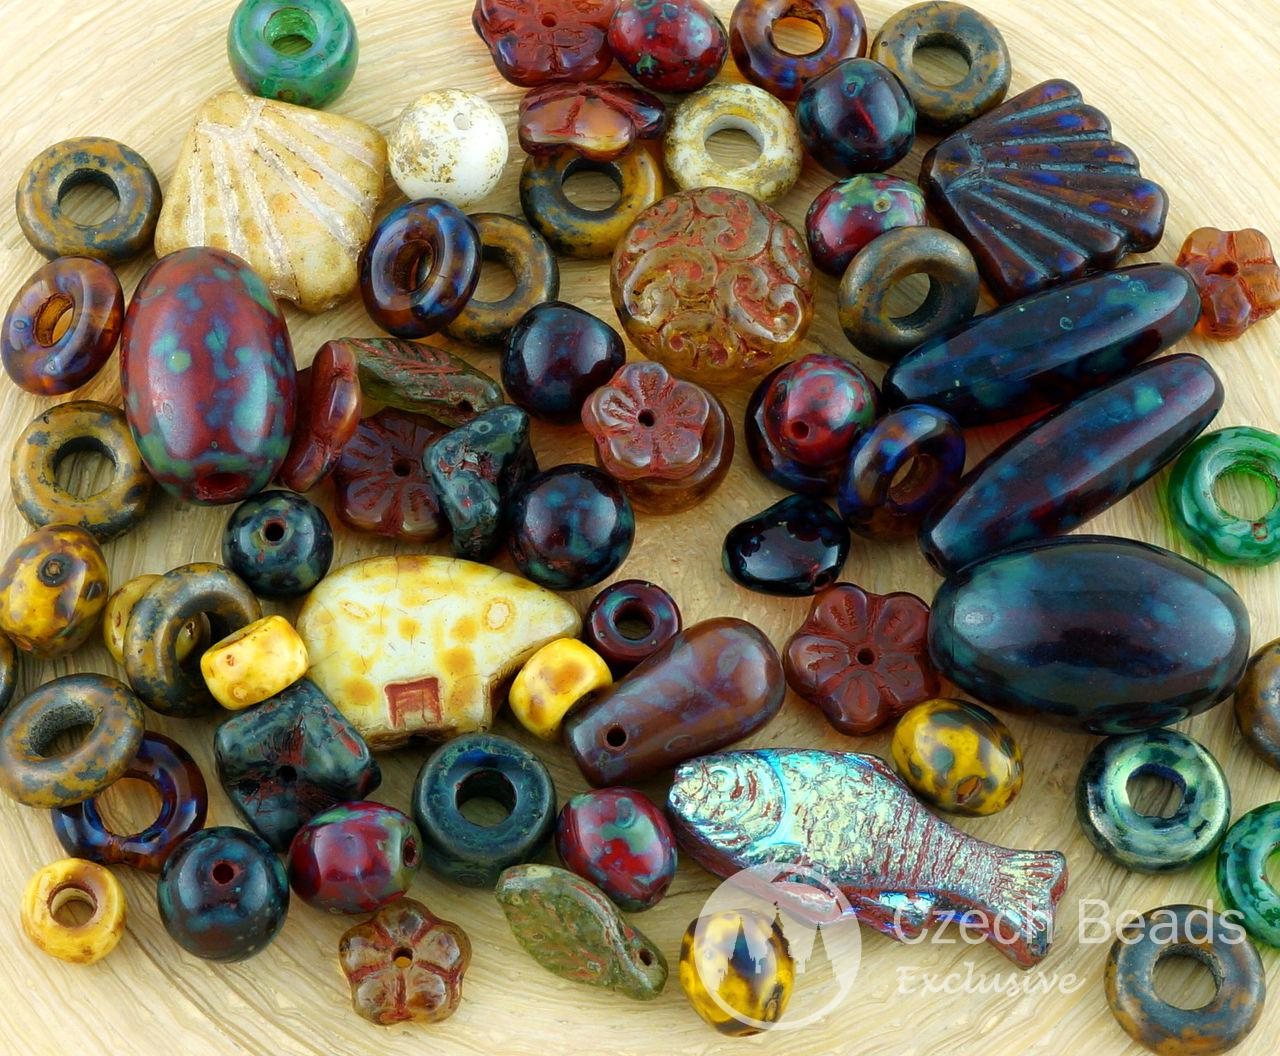 50g Anissa Picasso Multicolor Super Mega Mix Rustic Earthy Tribal Flower Bear Shell Fish Oval Round Square Ring Czech Glass Beads Bead Soup for $5.94 from Czech Beads Exclusive